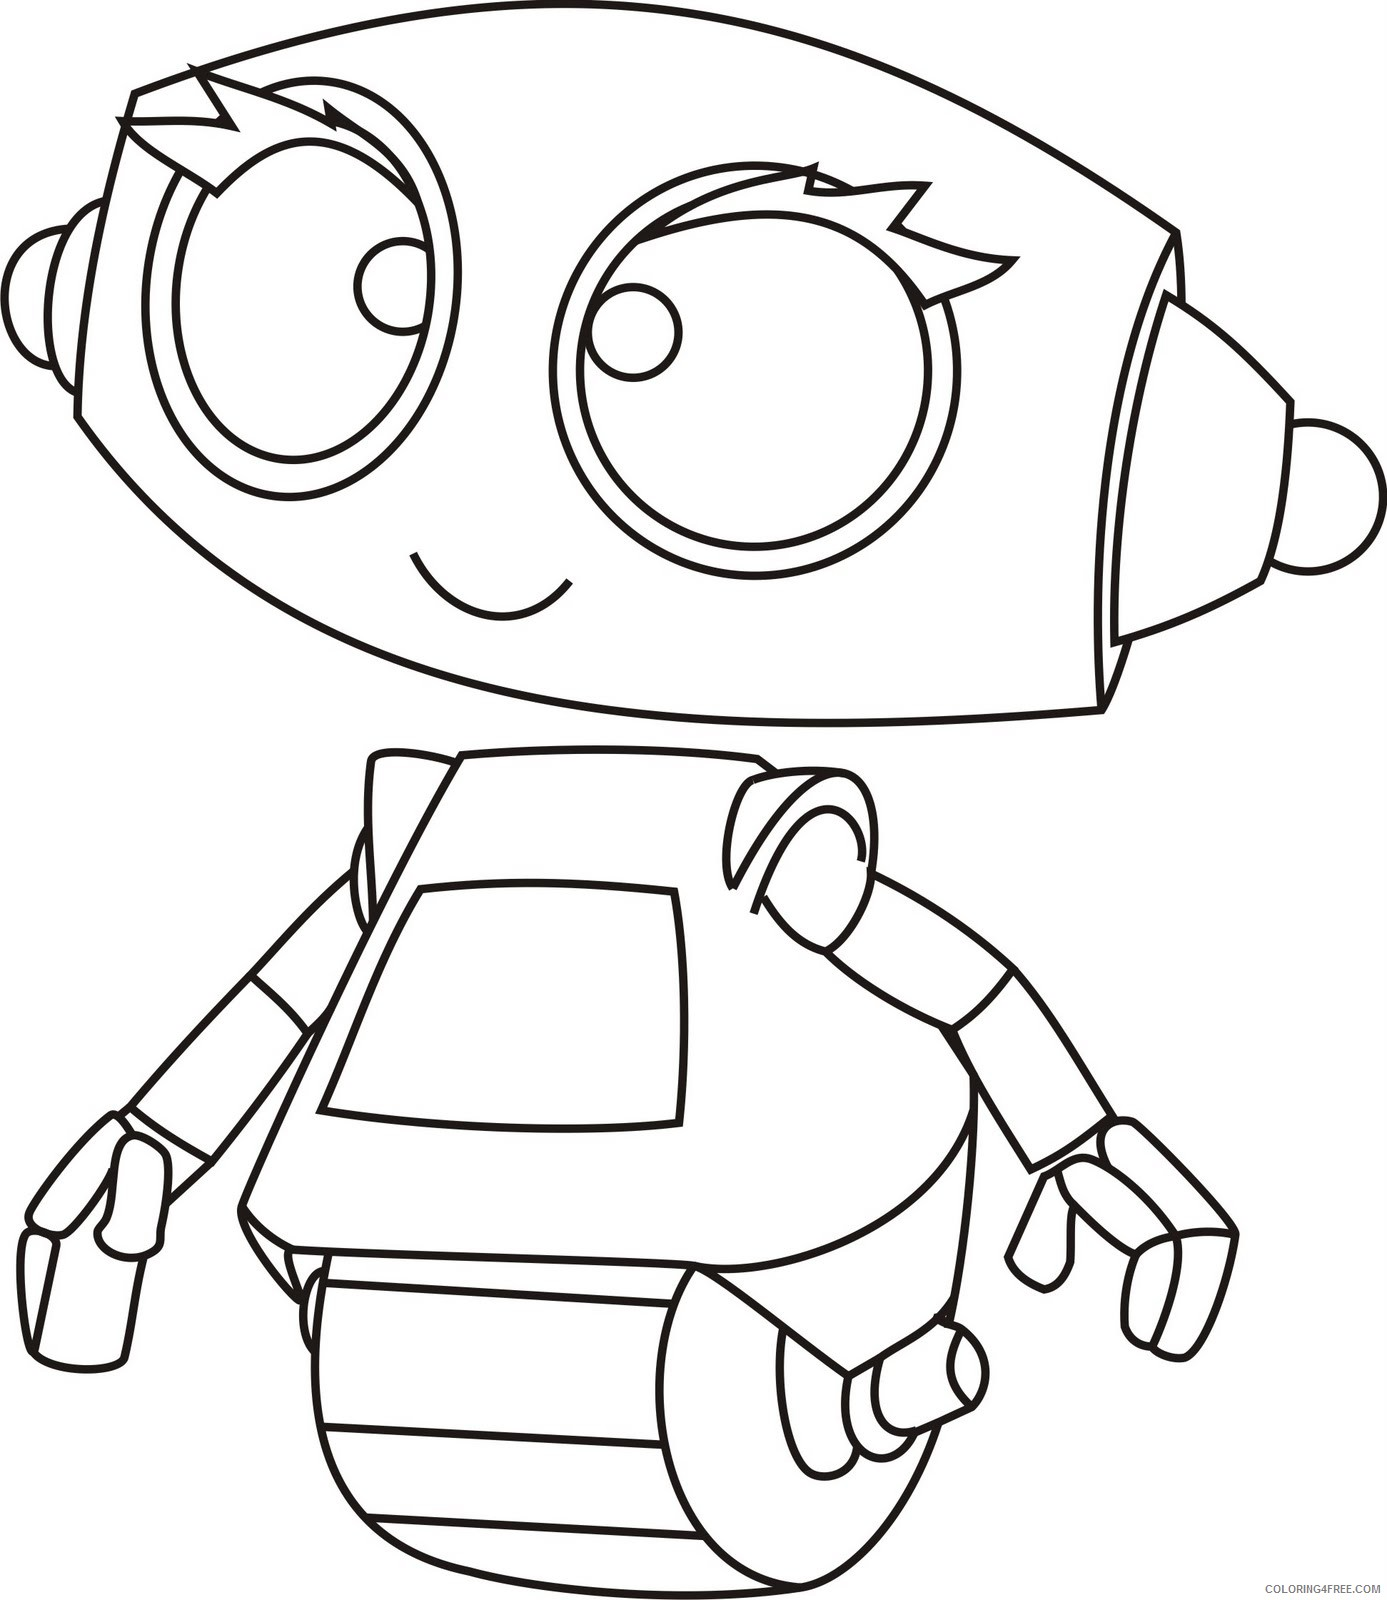 cute robot coloring pages printable Coloring4free